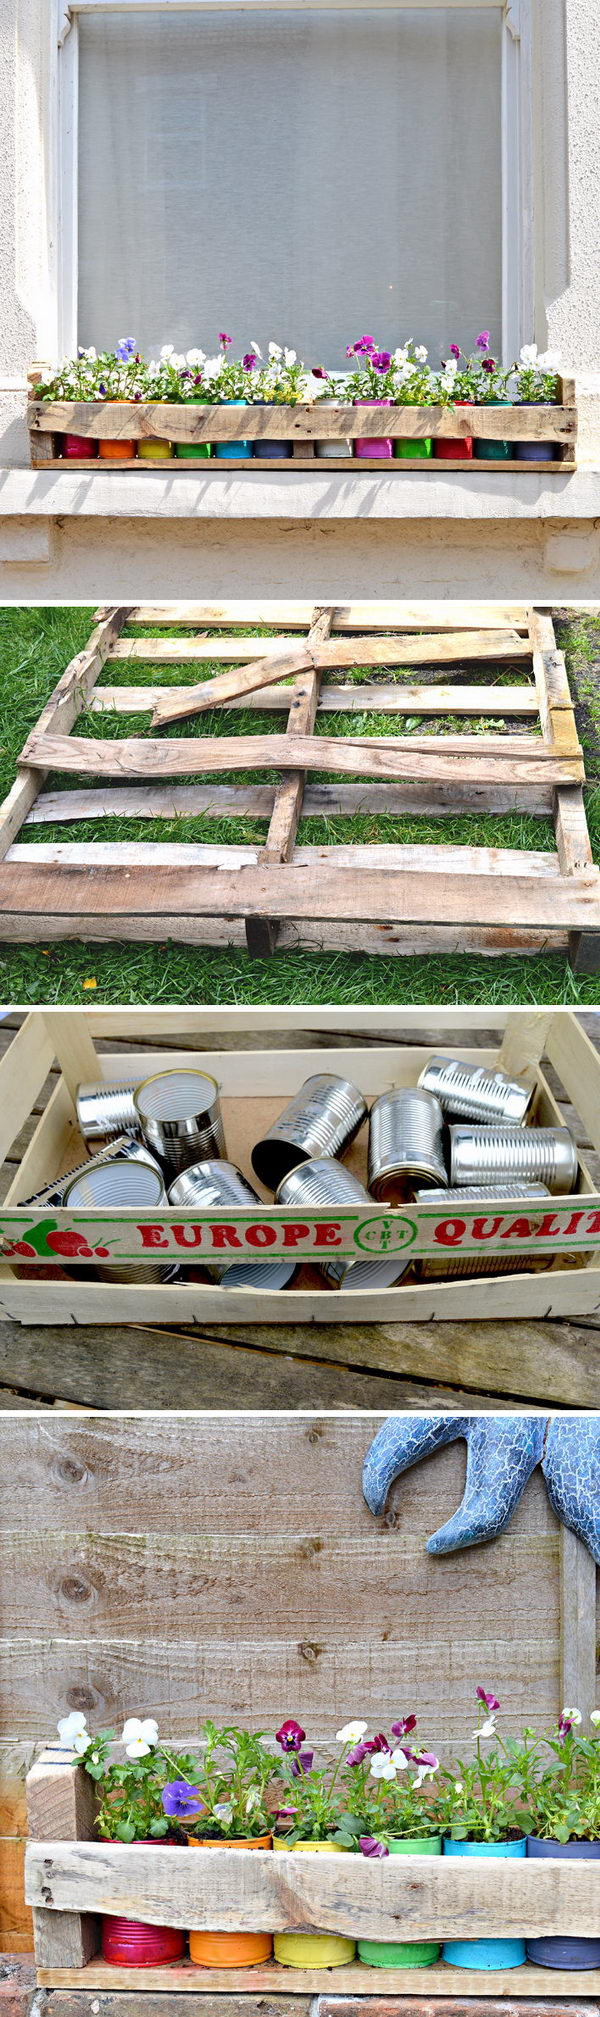 pallet holder with colourful tin can planters - Garden Ideas Using Pallets